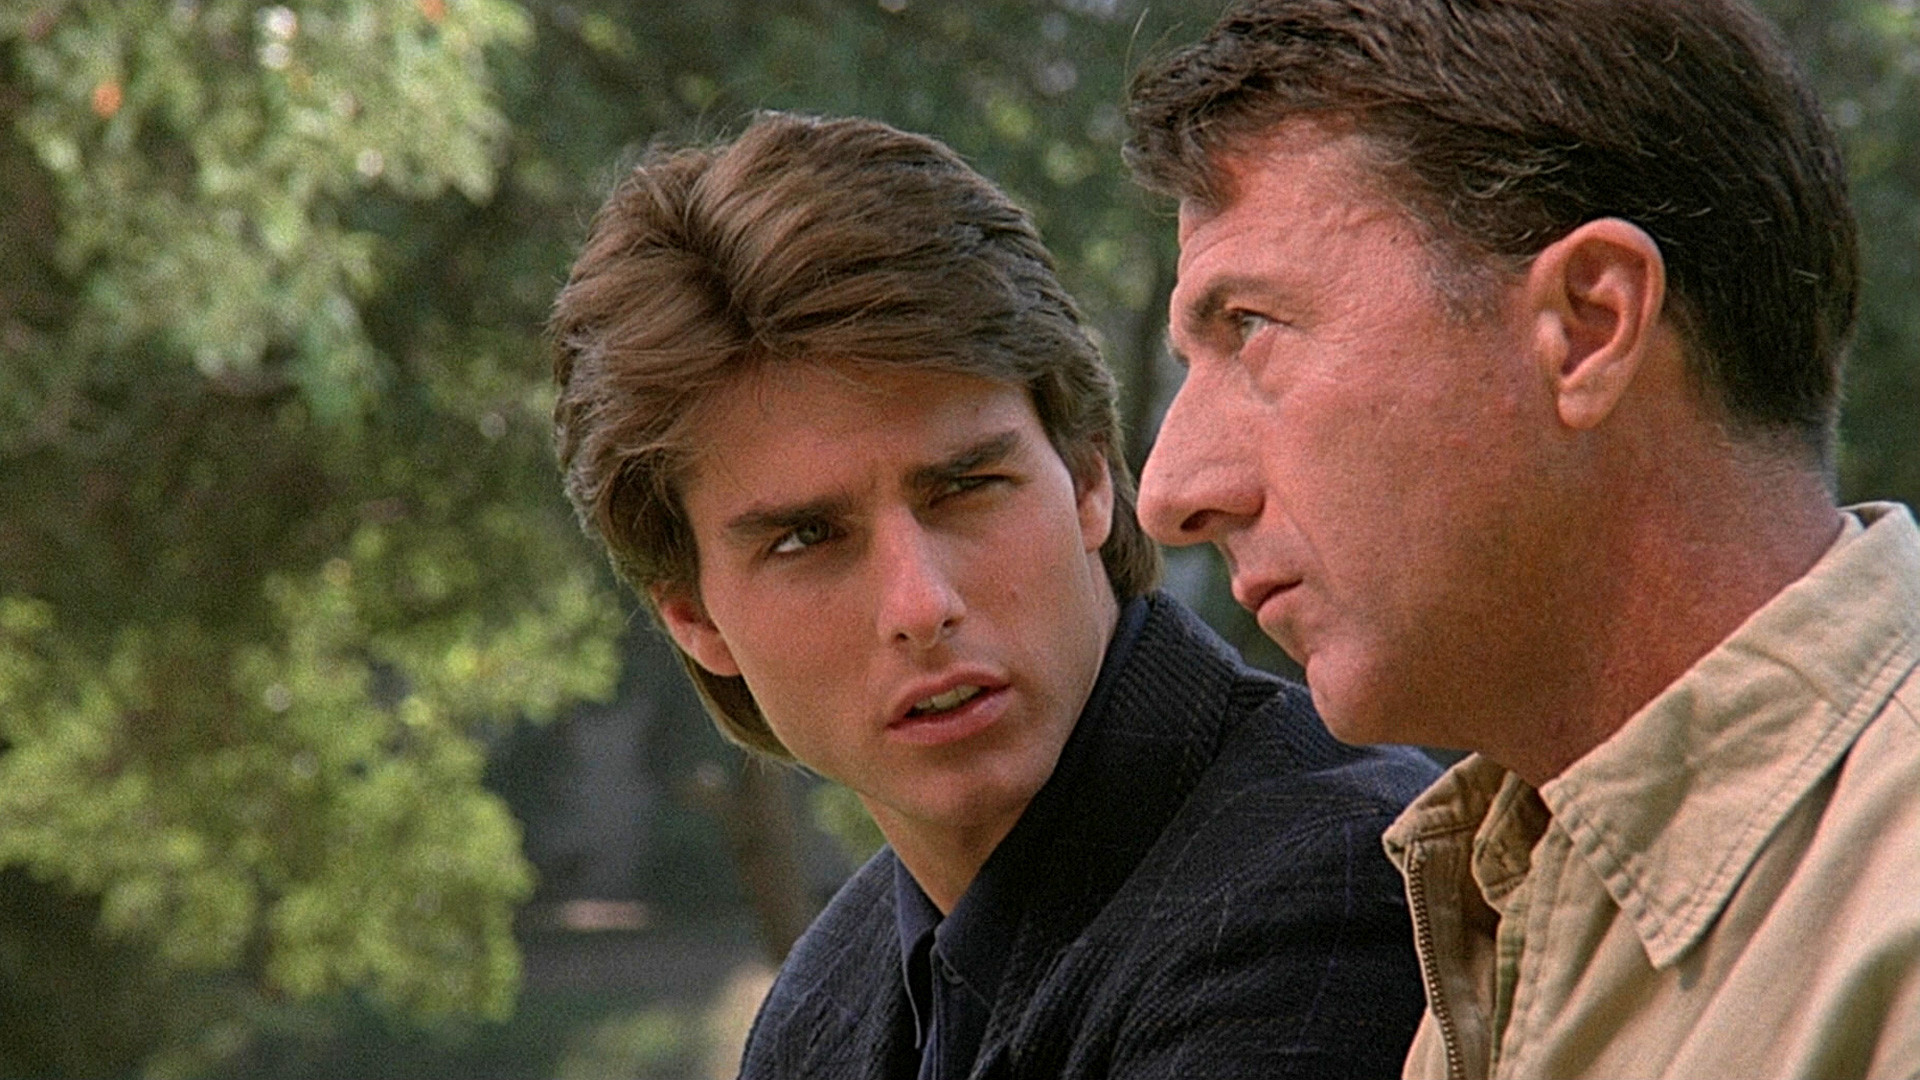 Filme Rayman pertaining to rain man • 1989 • dublado • cine mp4